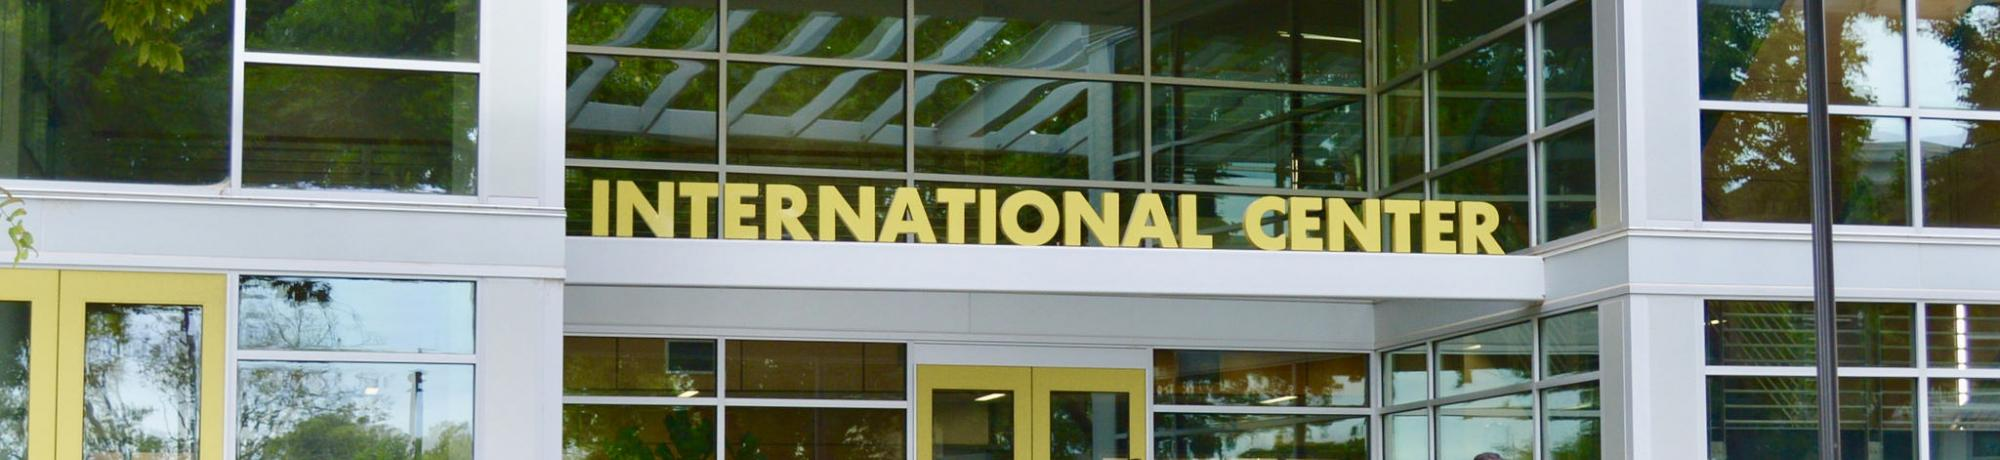 International Center sign